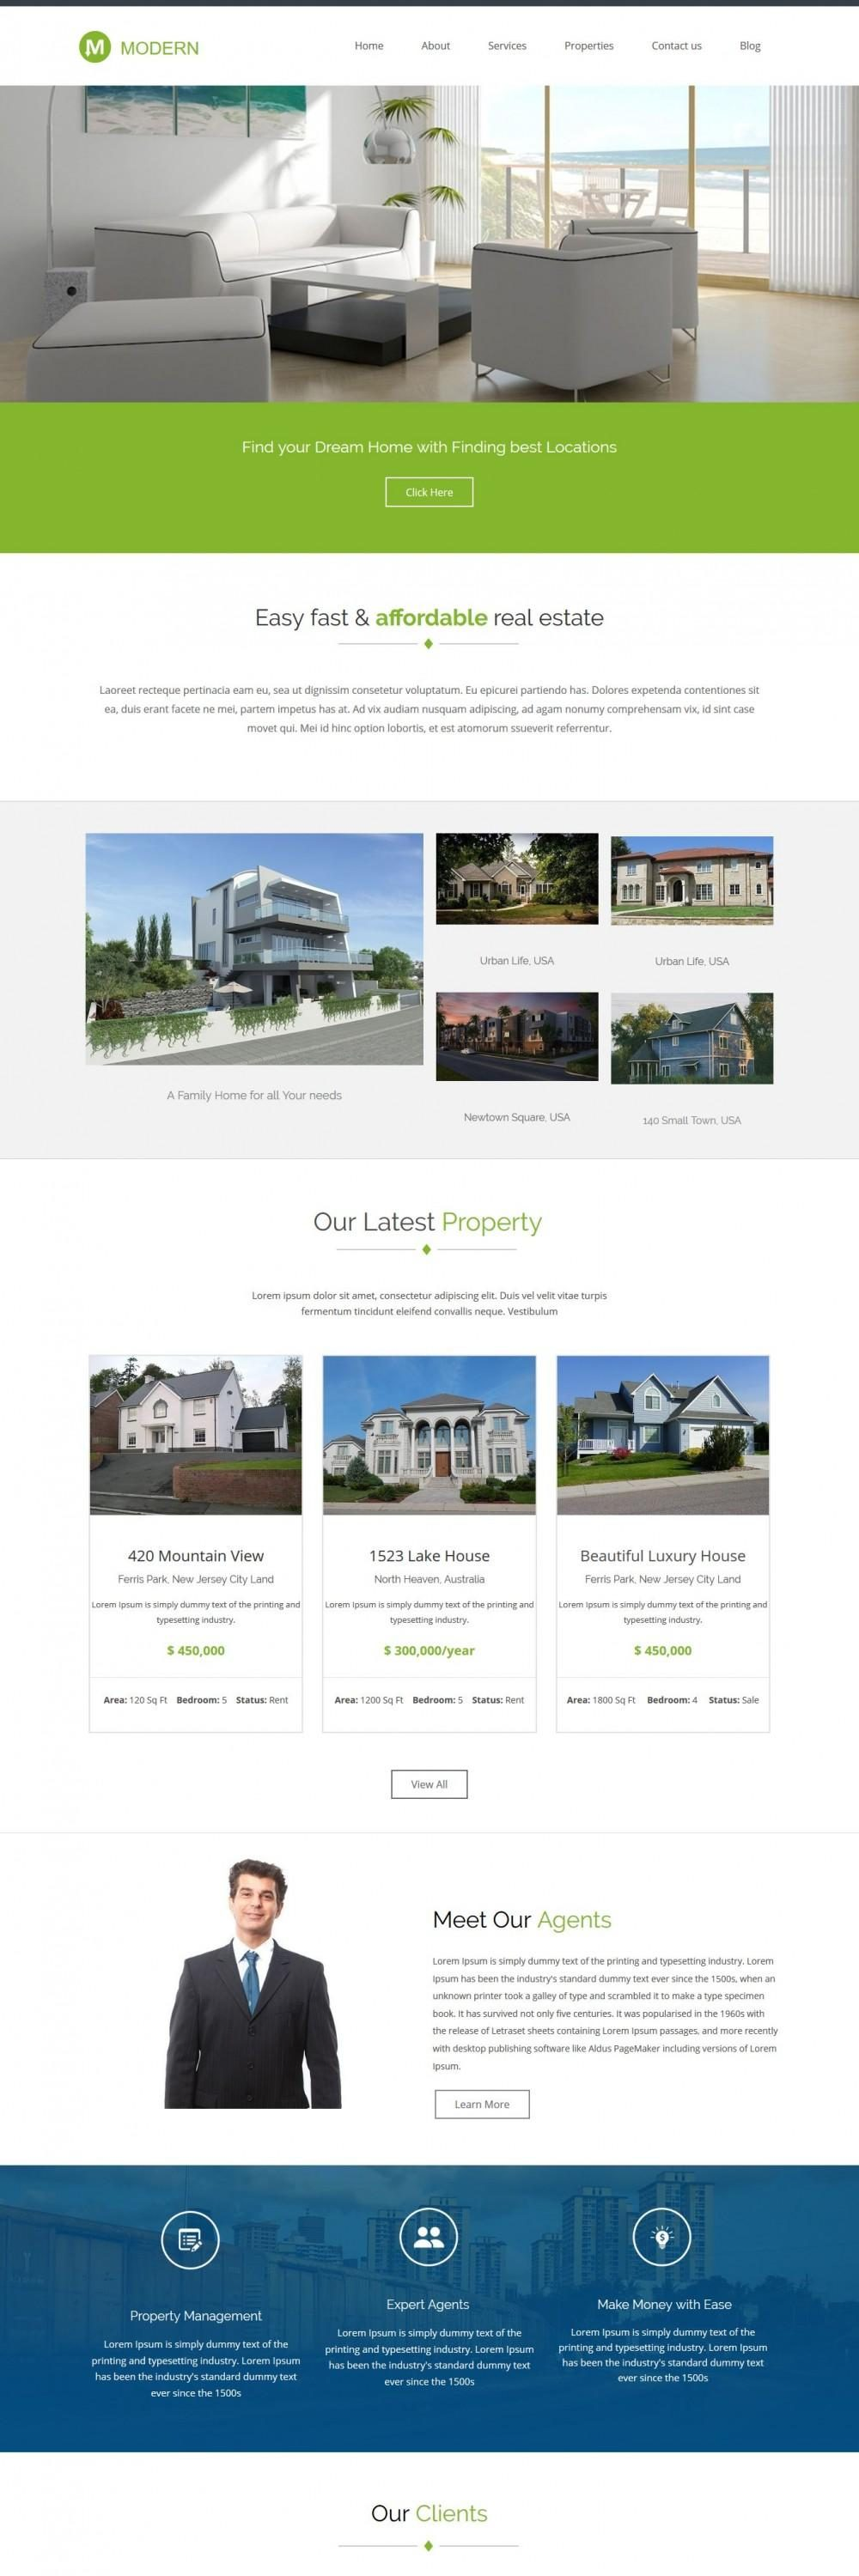 Modern - WordPress Theme for Real Estate/Interior Designs